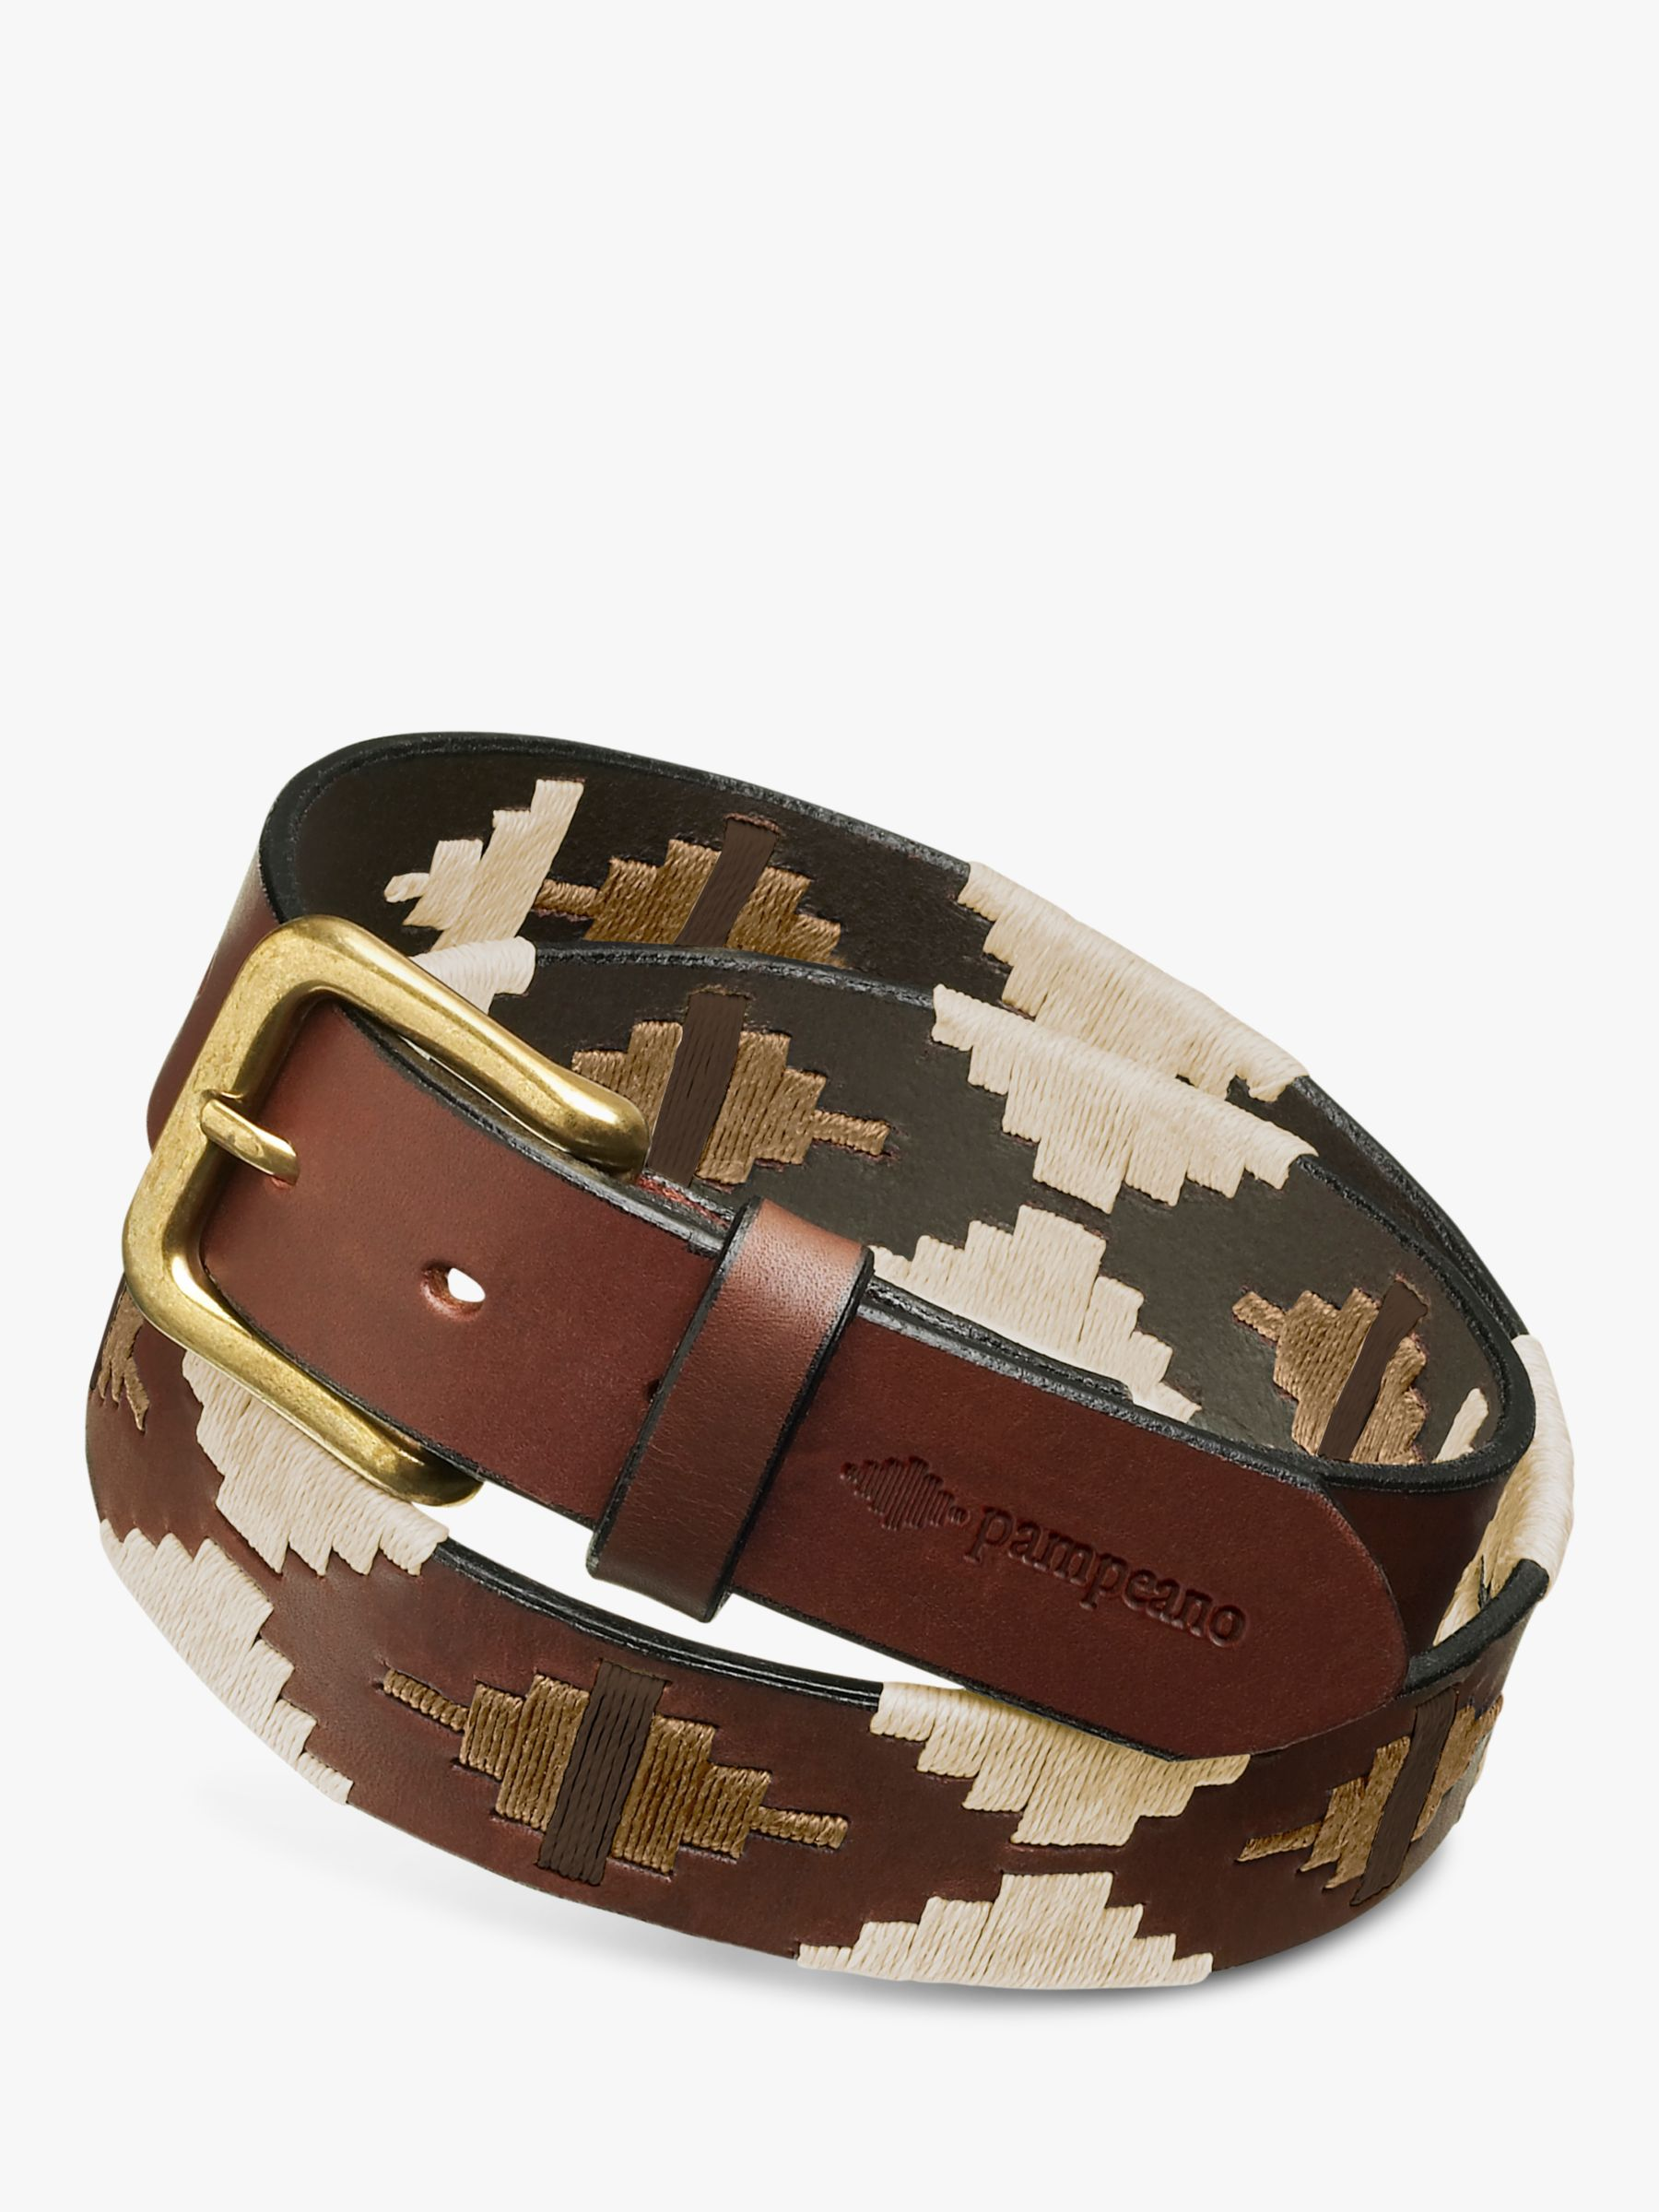 Pampeano pampeano Tornado Leather Polo Belt